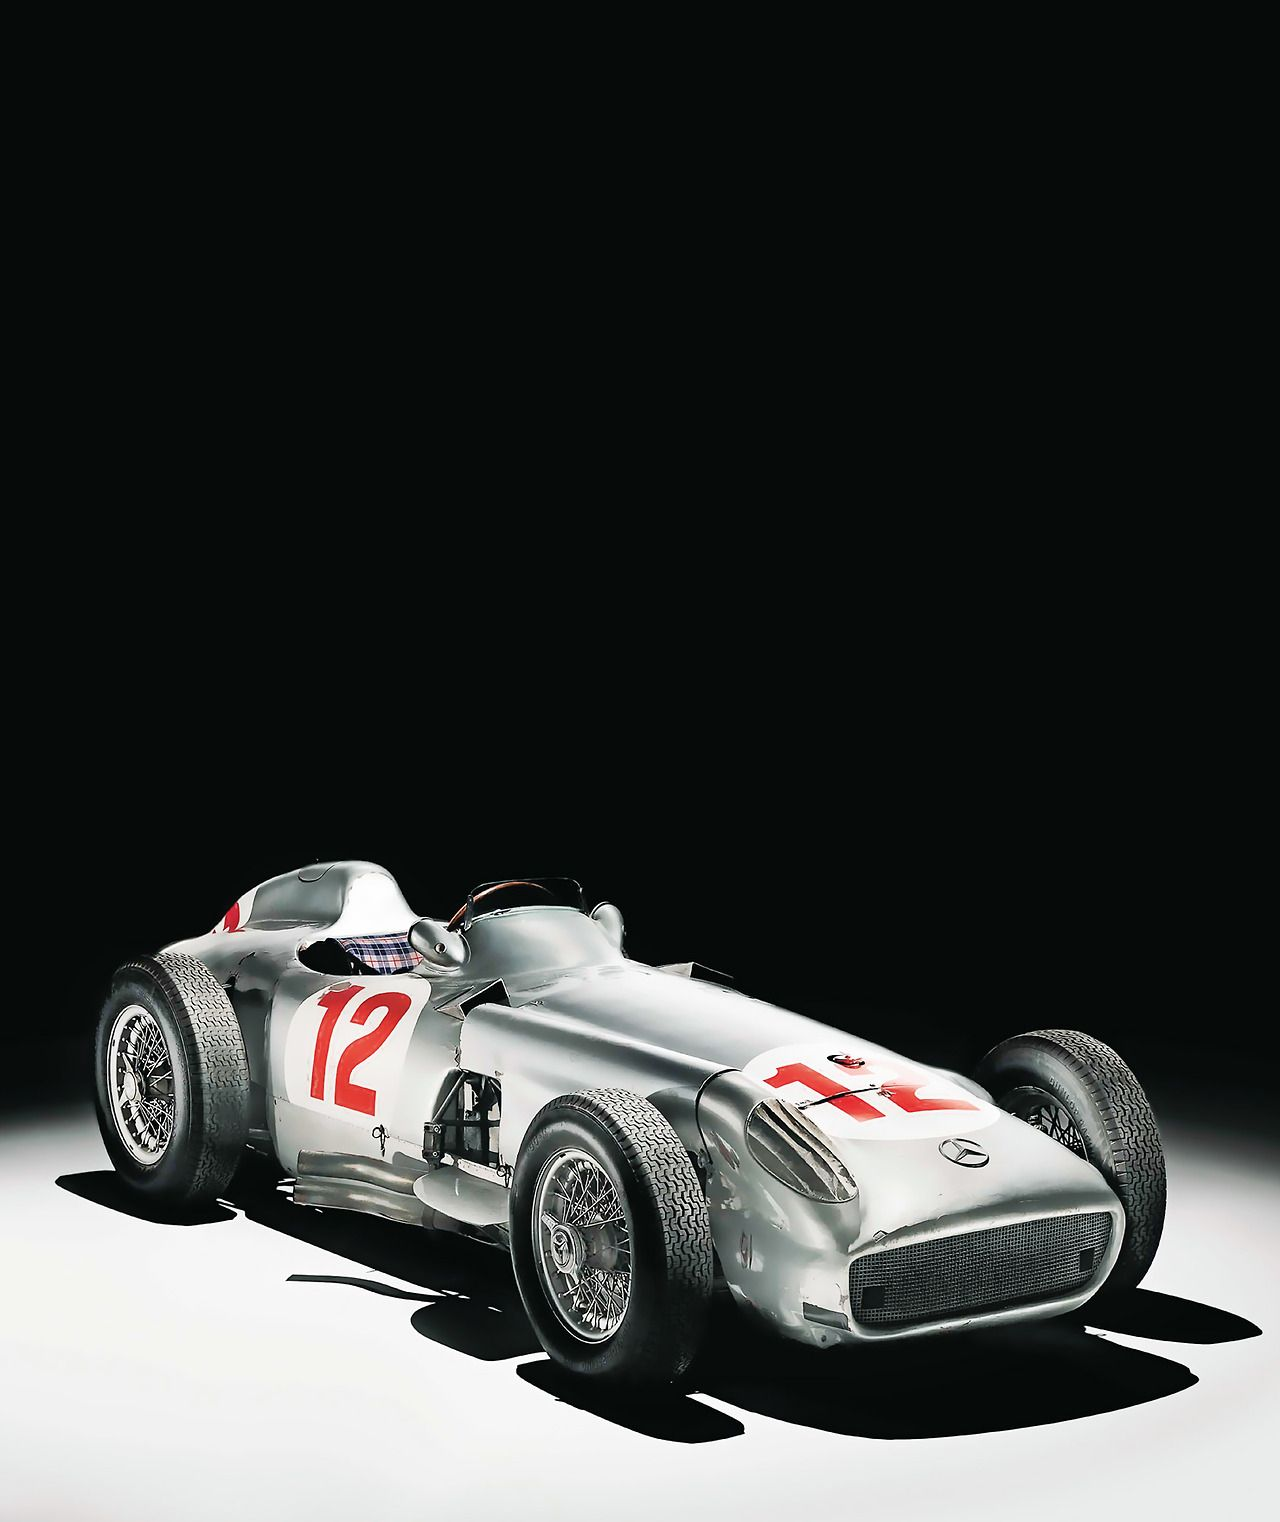 Looks Like A Vintage Mercedes F1 Silver Arrow From The 1950s Race